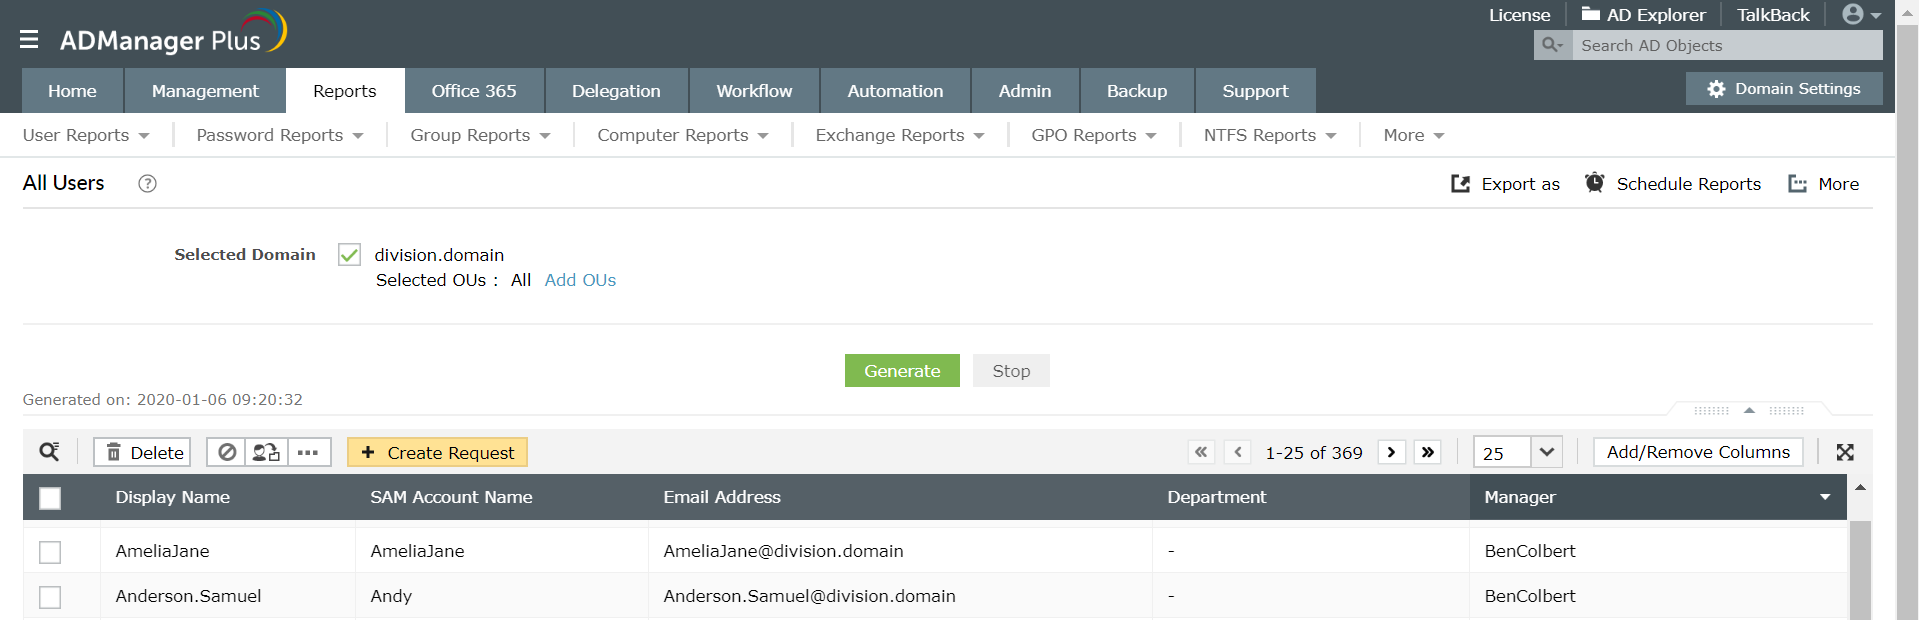 Screenshot of ADManager Plus listing all the users along with their managers display names